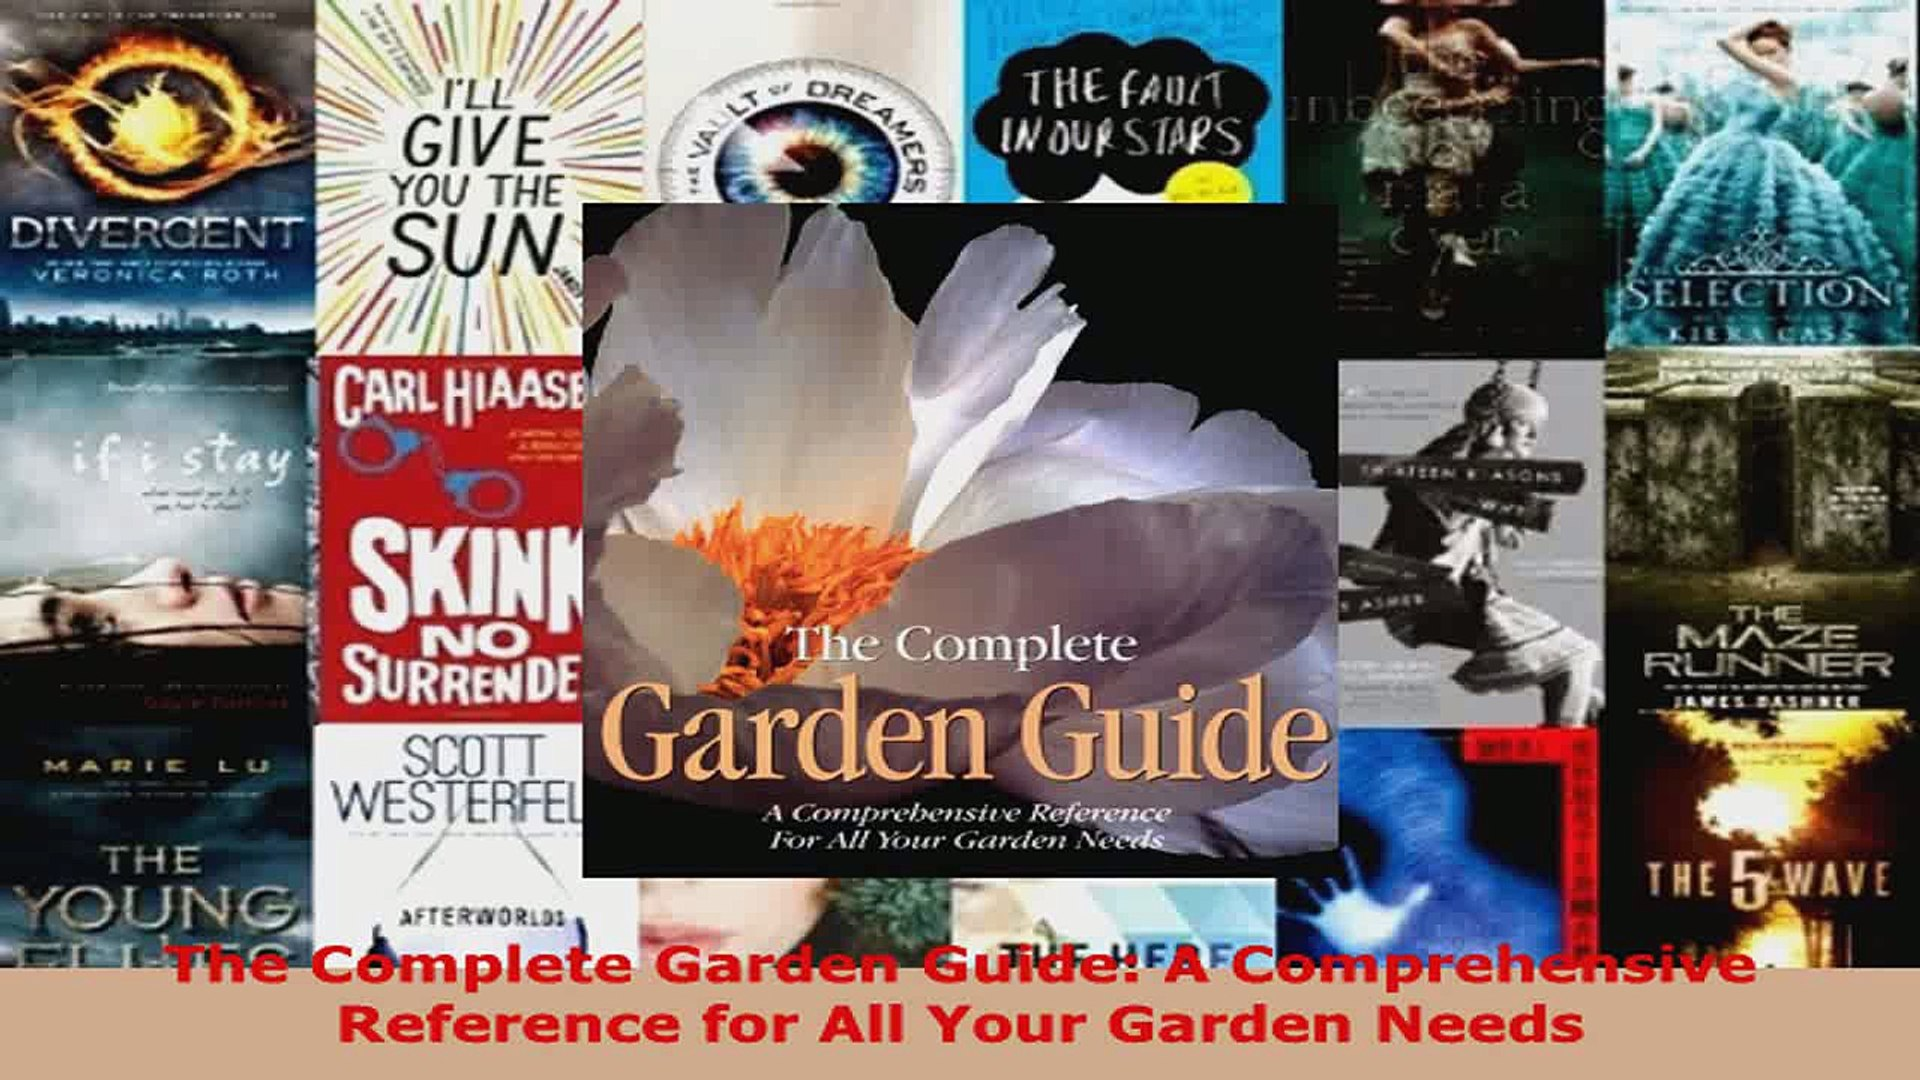 Read  The Complete Garden Guide A Comprehensive Reference for All Your Garden Needs Ebook Free